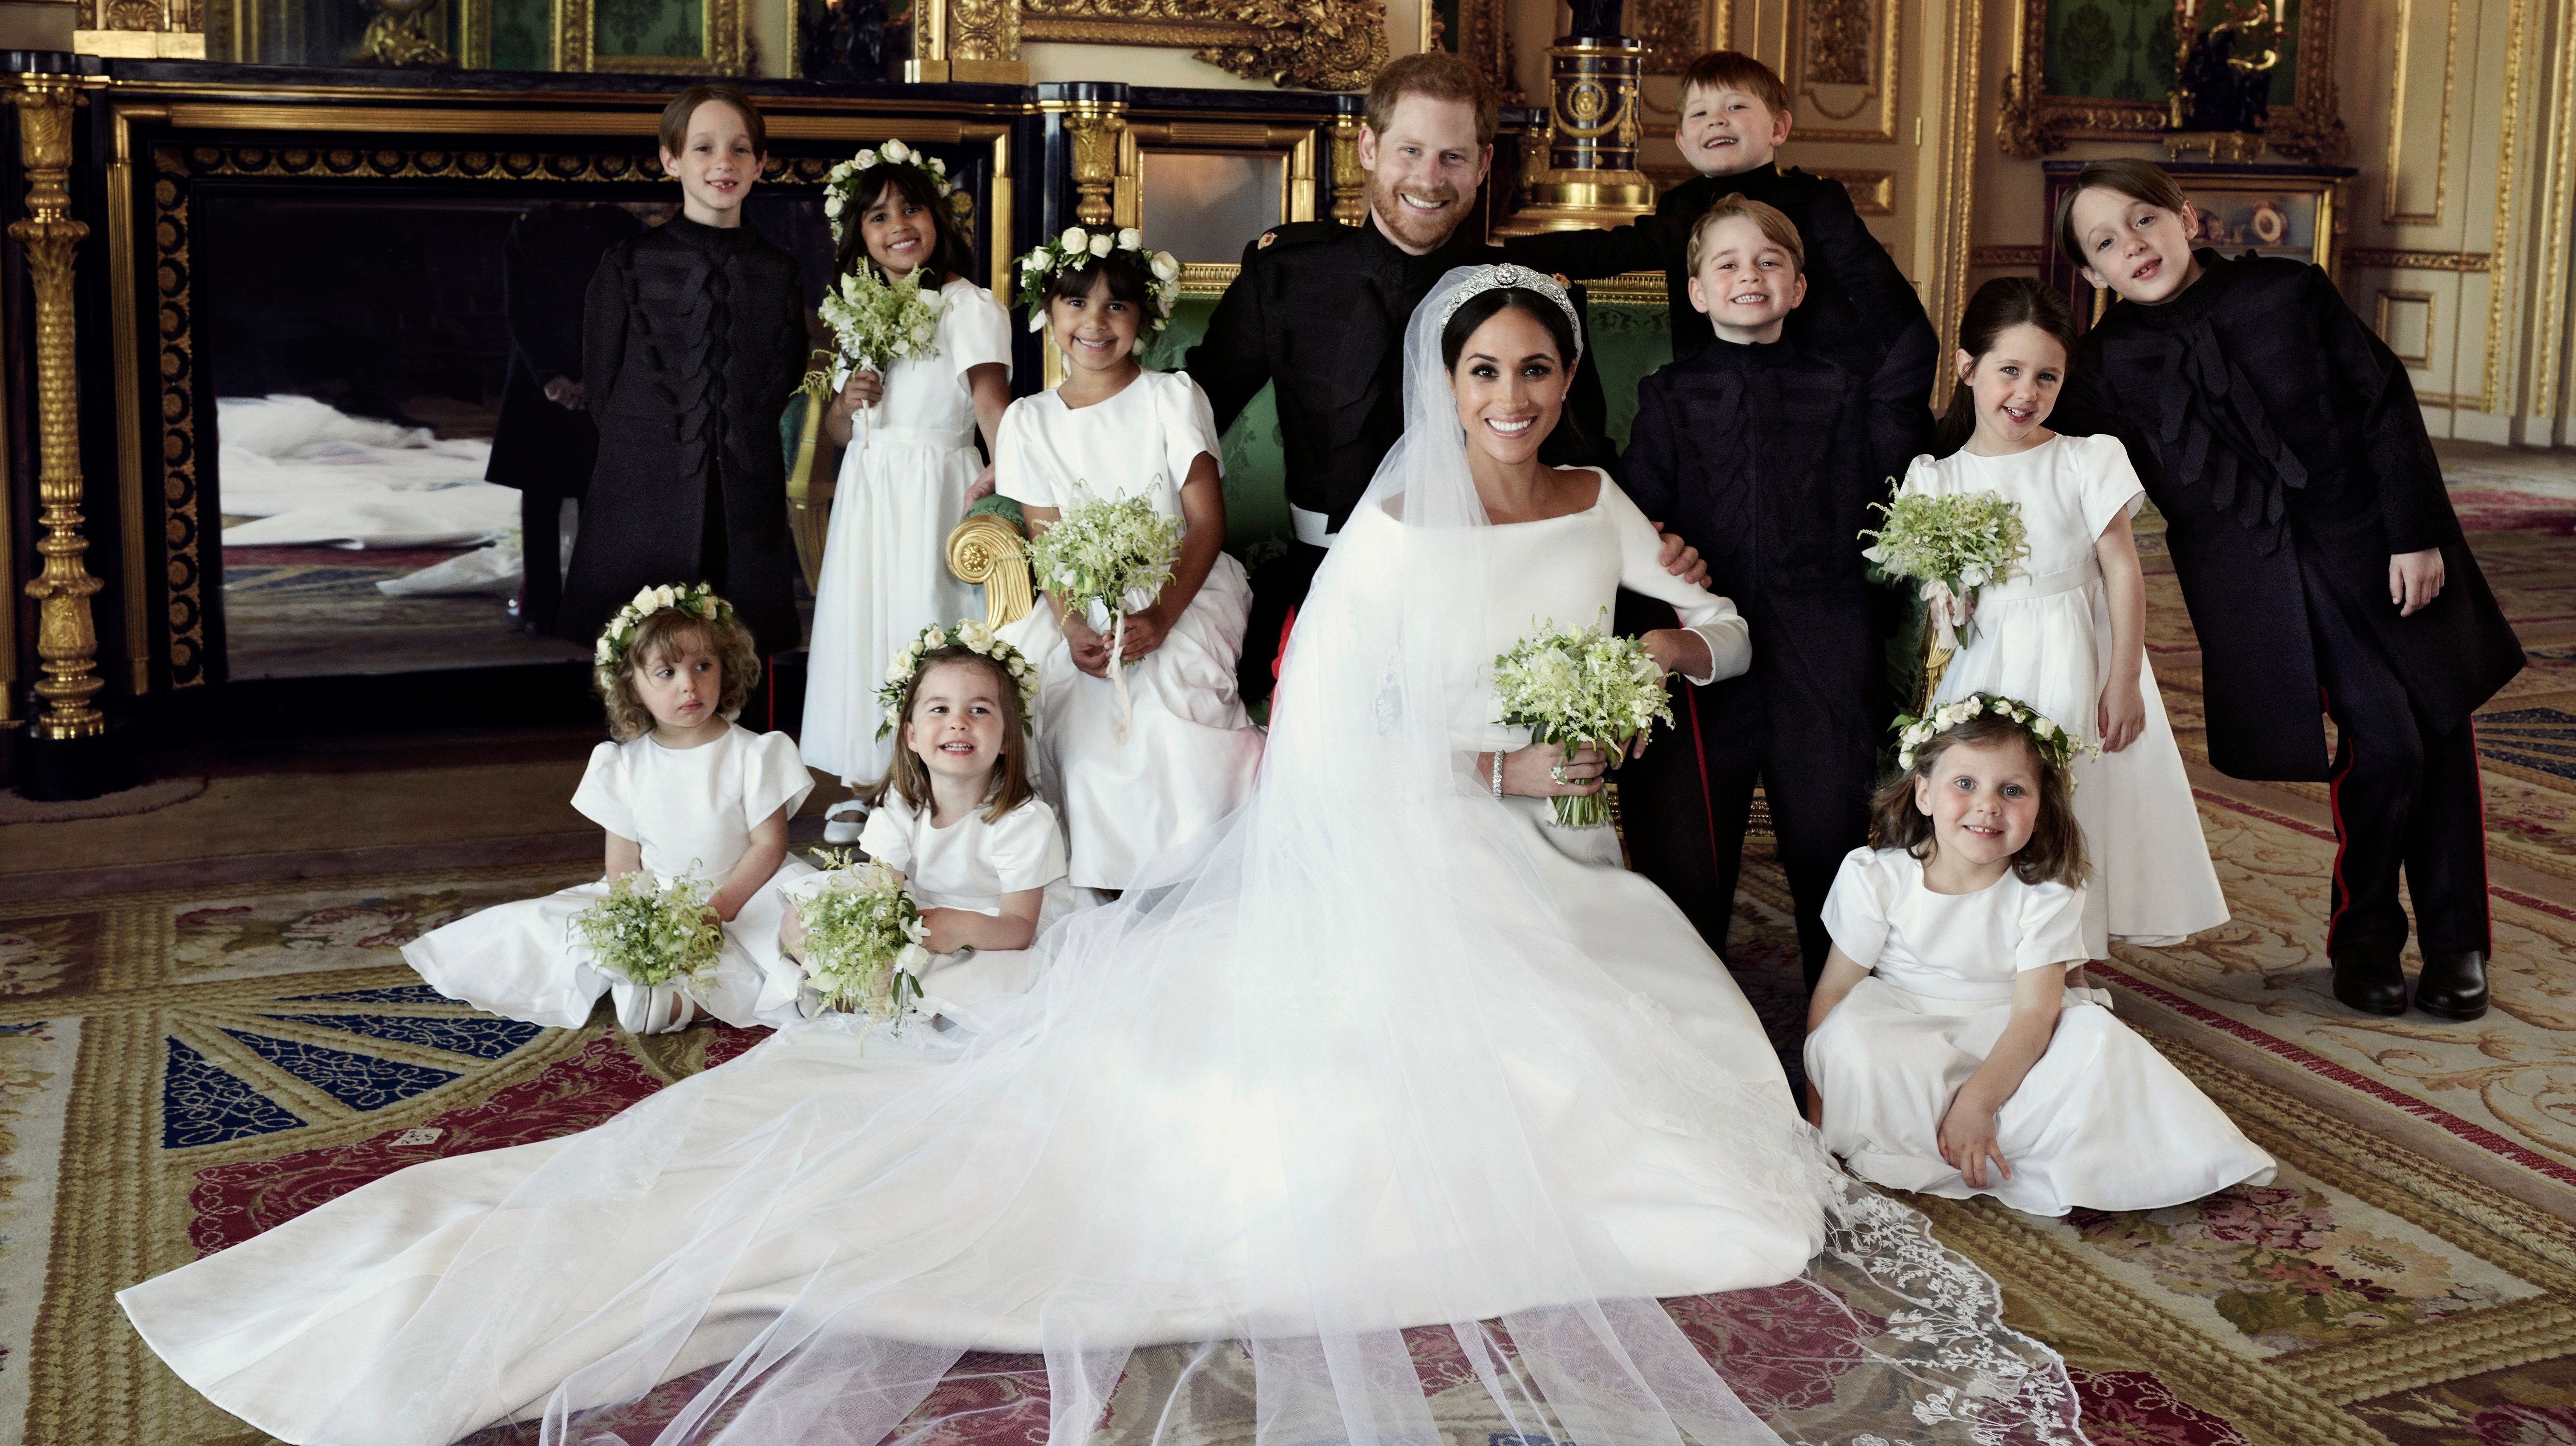 This official wedding photograph released by the Duke and Duchess of Sussex shows The Duke and Duchess in The Green Drawing Room, Windsor Castle, with (left-to-right): Back row: Master Brian Mulroney, Miss Remi Litt, Miss Rylan Litt, Master Jasper Dyer, Prince George, Miss Ivy Mulroney, Master John Mulroney. Front row: Miss Zalie Warren, Princess Charlotte, Miss Florence van Cutsem, on May 19, 2018.